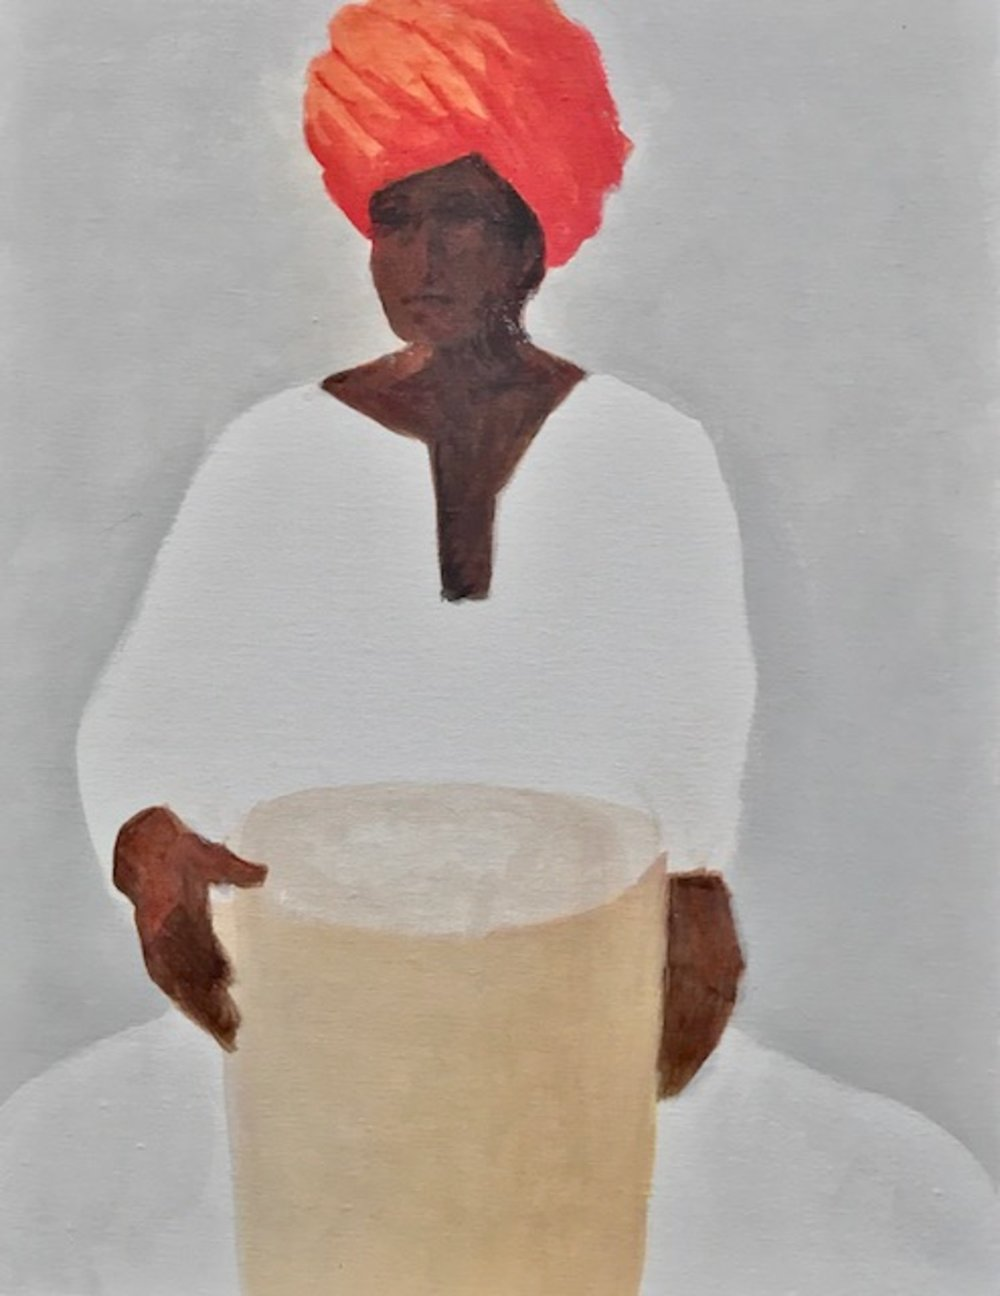 Drummer, Red Turban